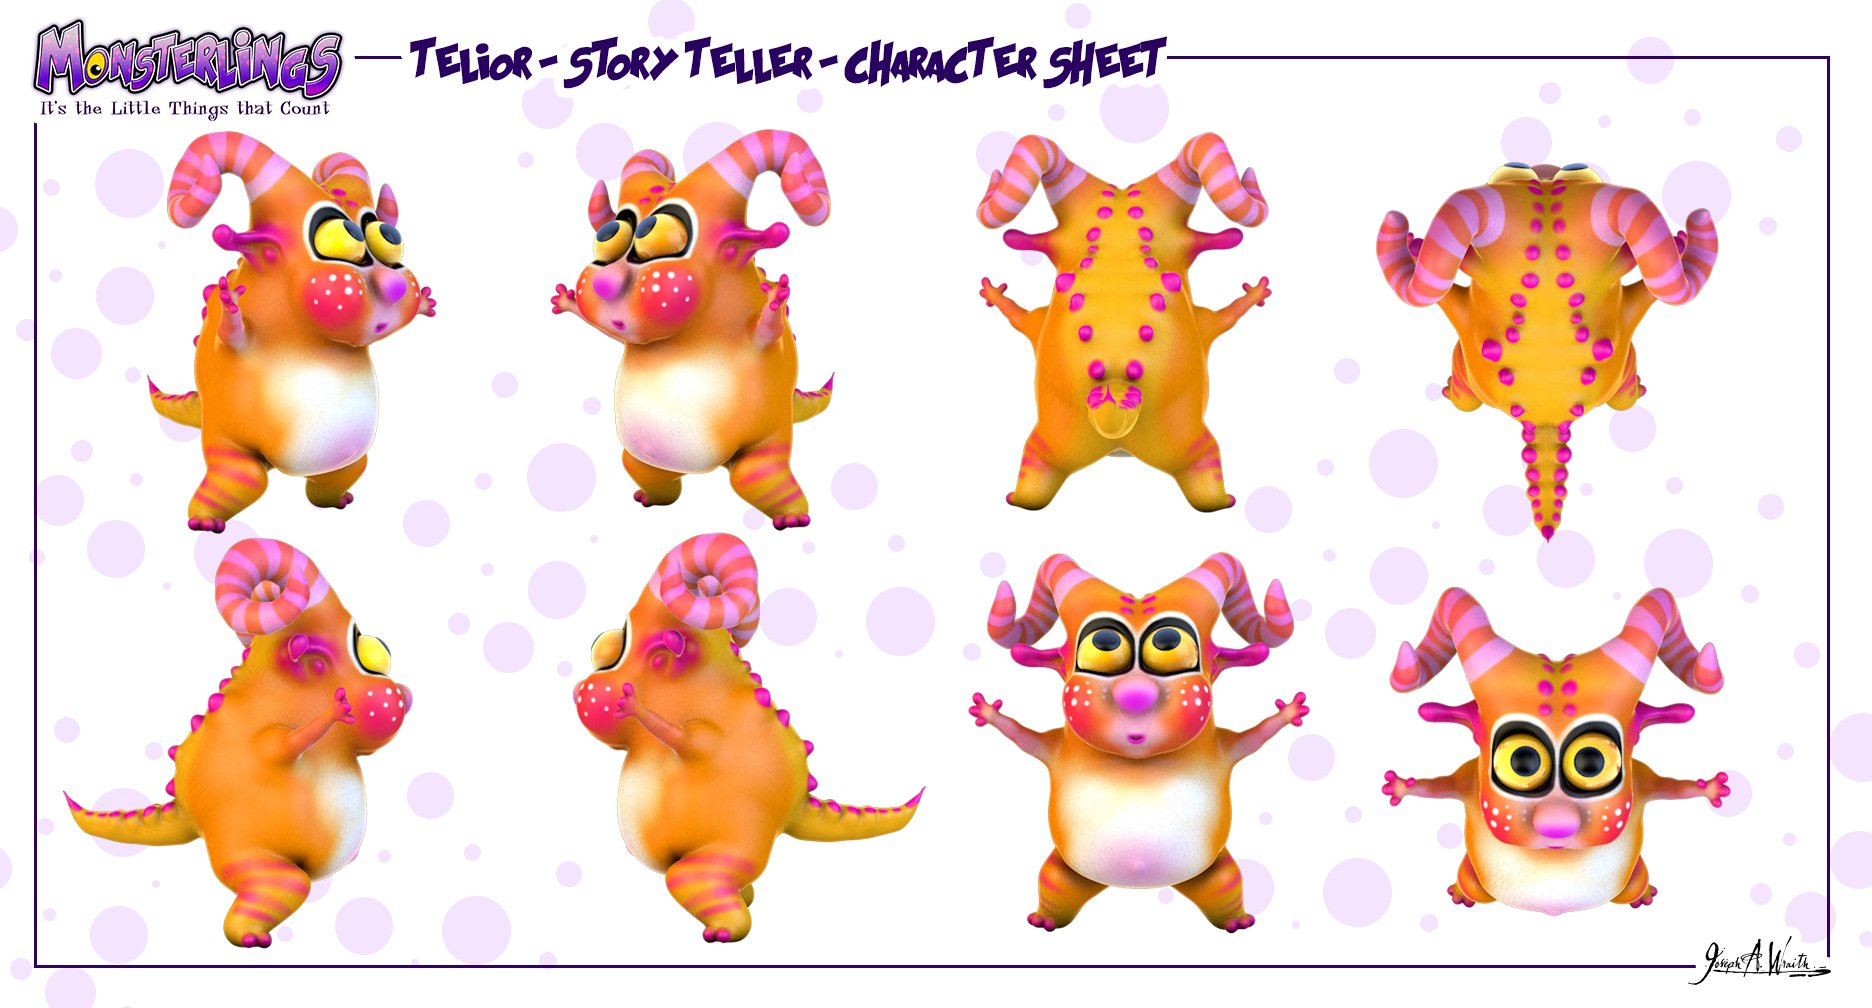 Monsterlings - Telior Physical Character Sheet